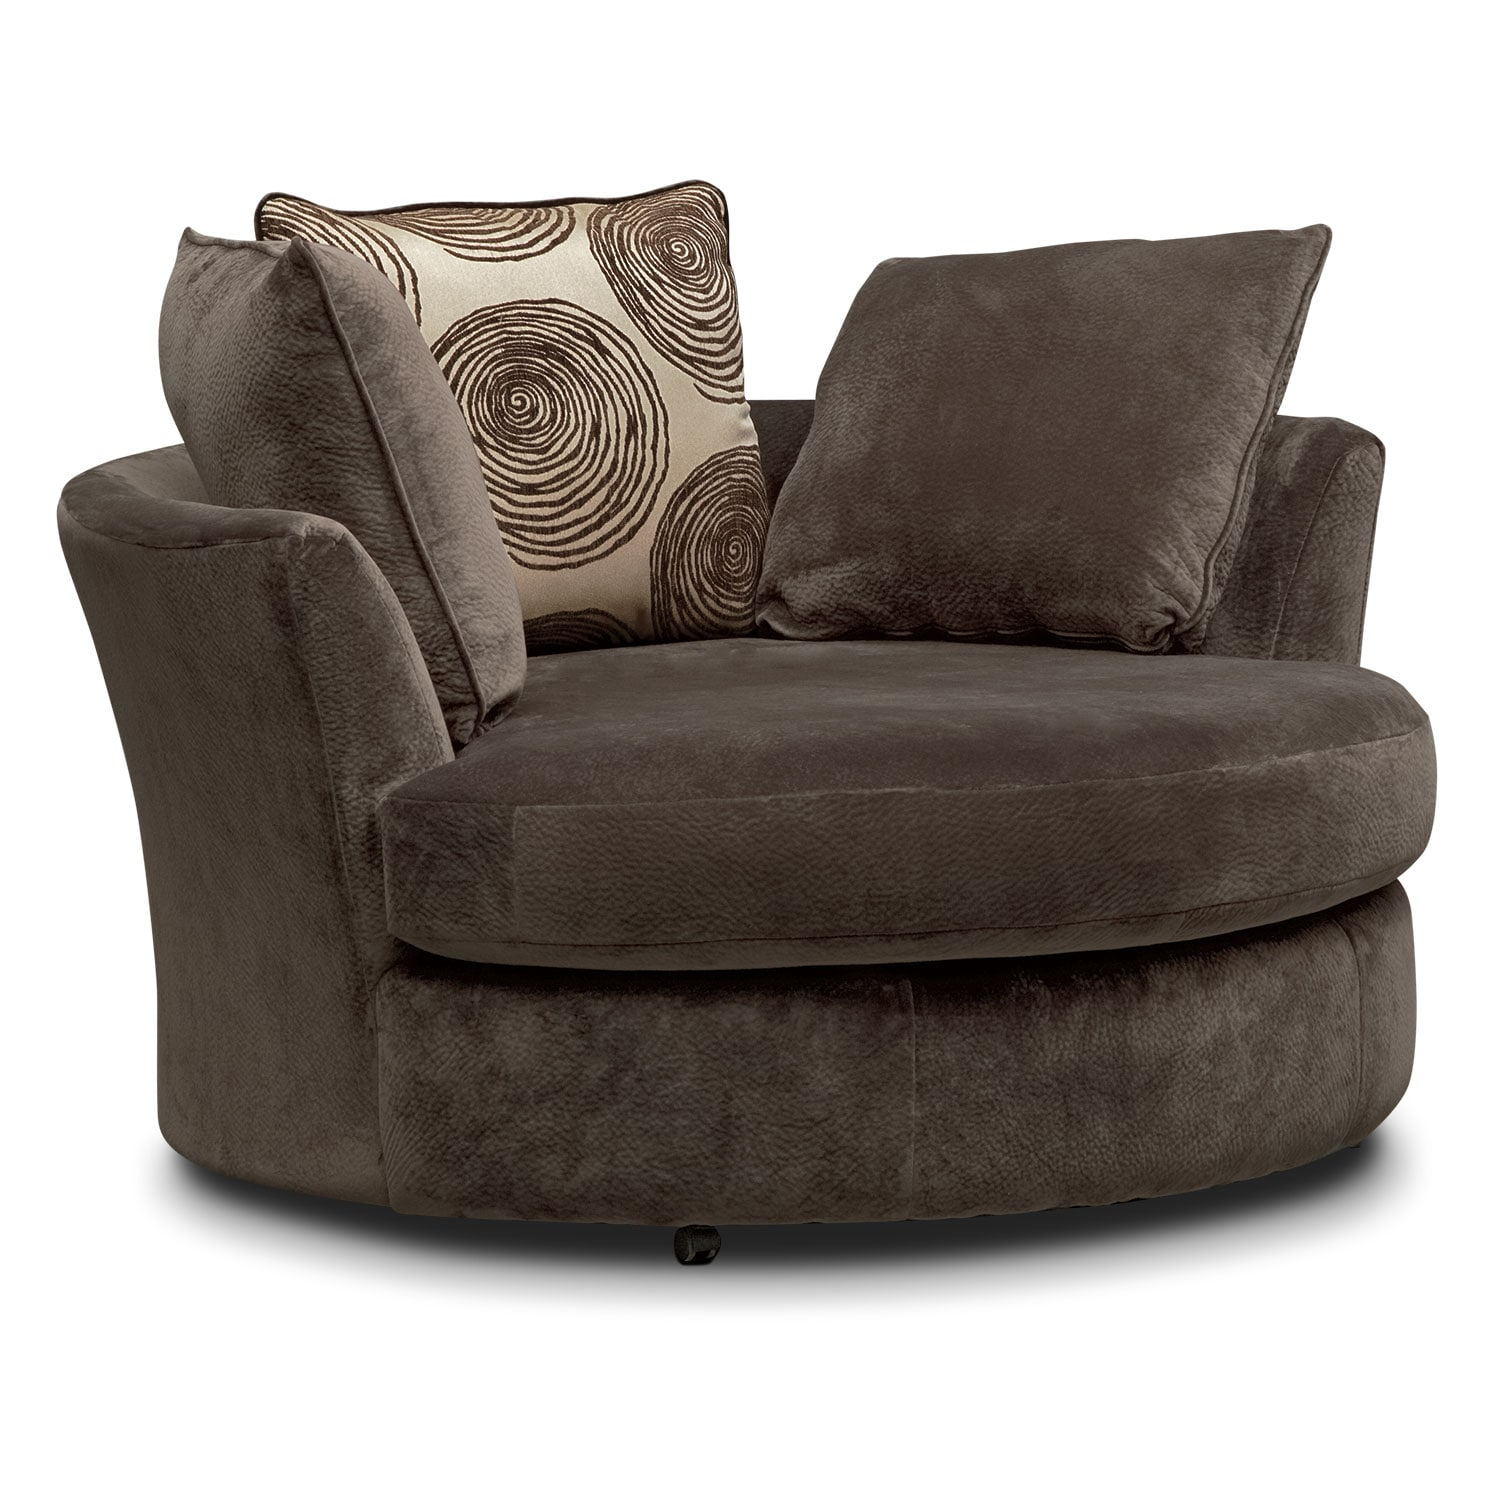 Cordelle Swivel Chair - Chocolate | Value City Furniture